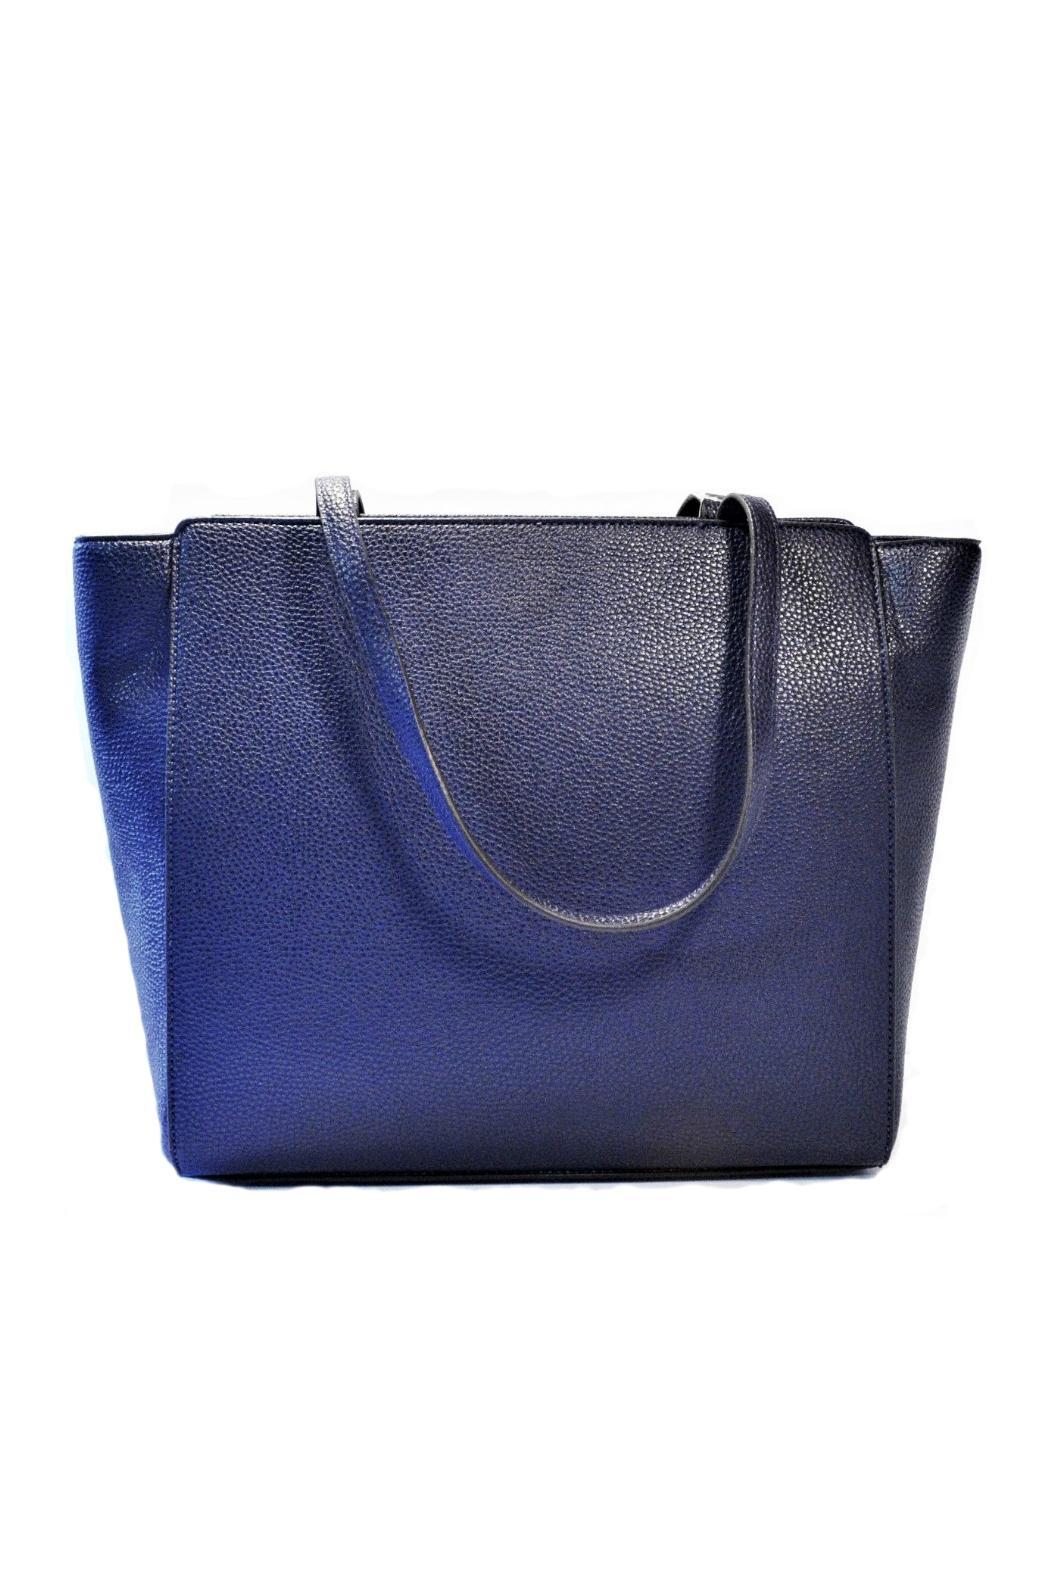 Anne Klein Navy Timeless Choice Bag - Front Full Image